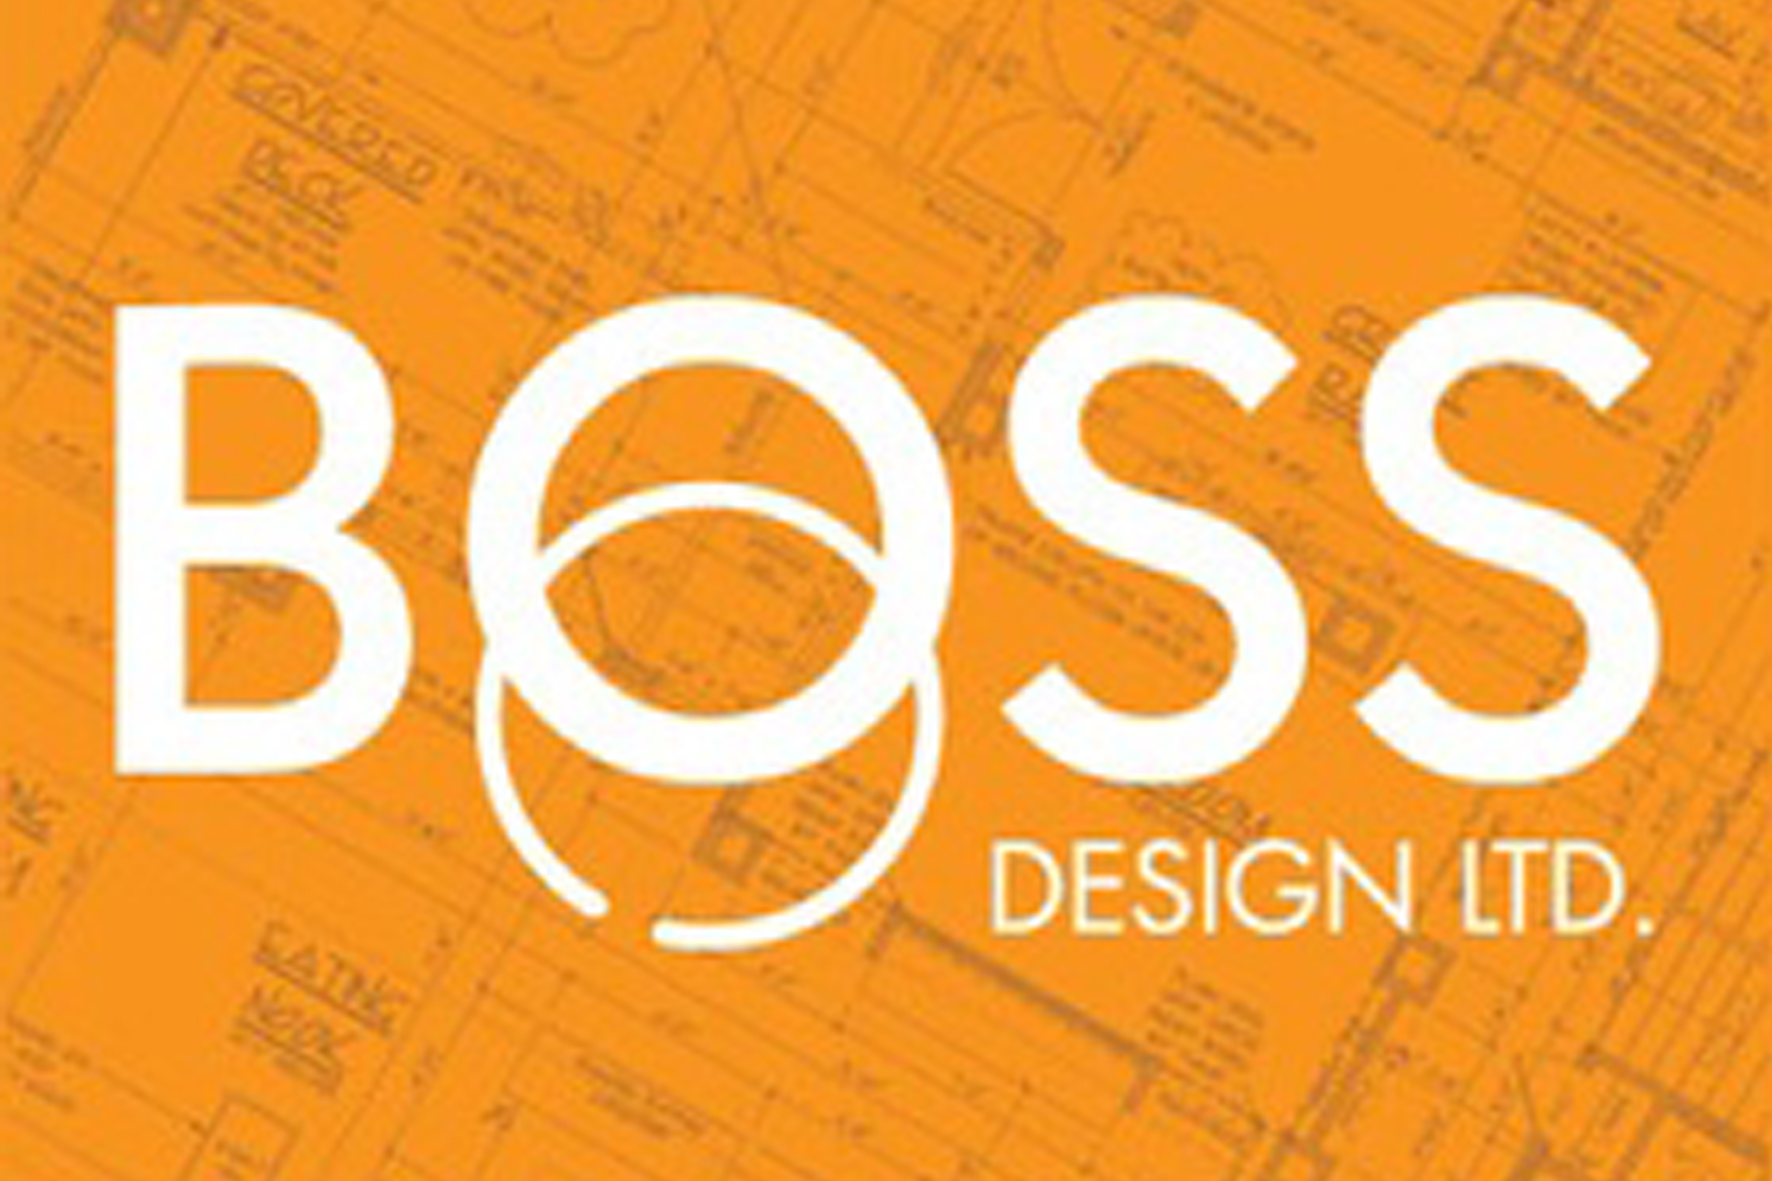 Boss Design Limited